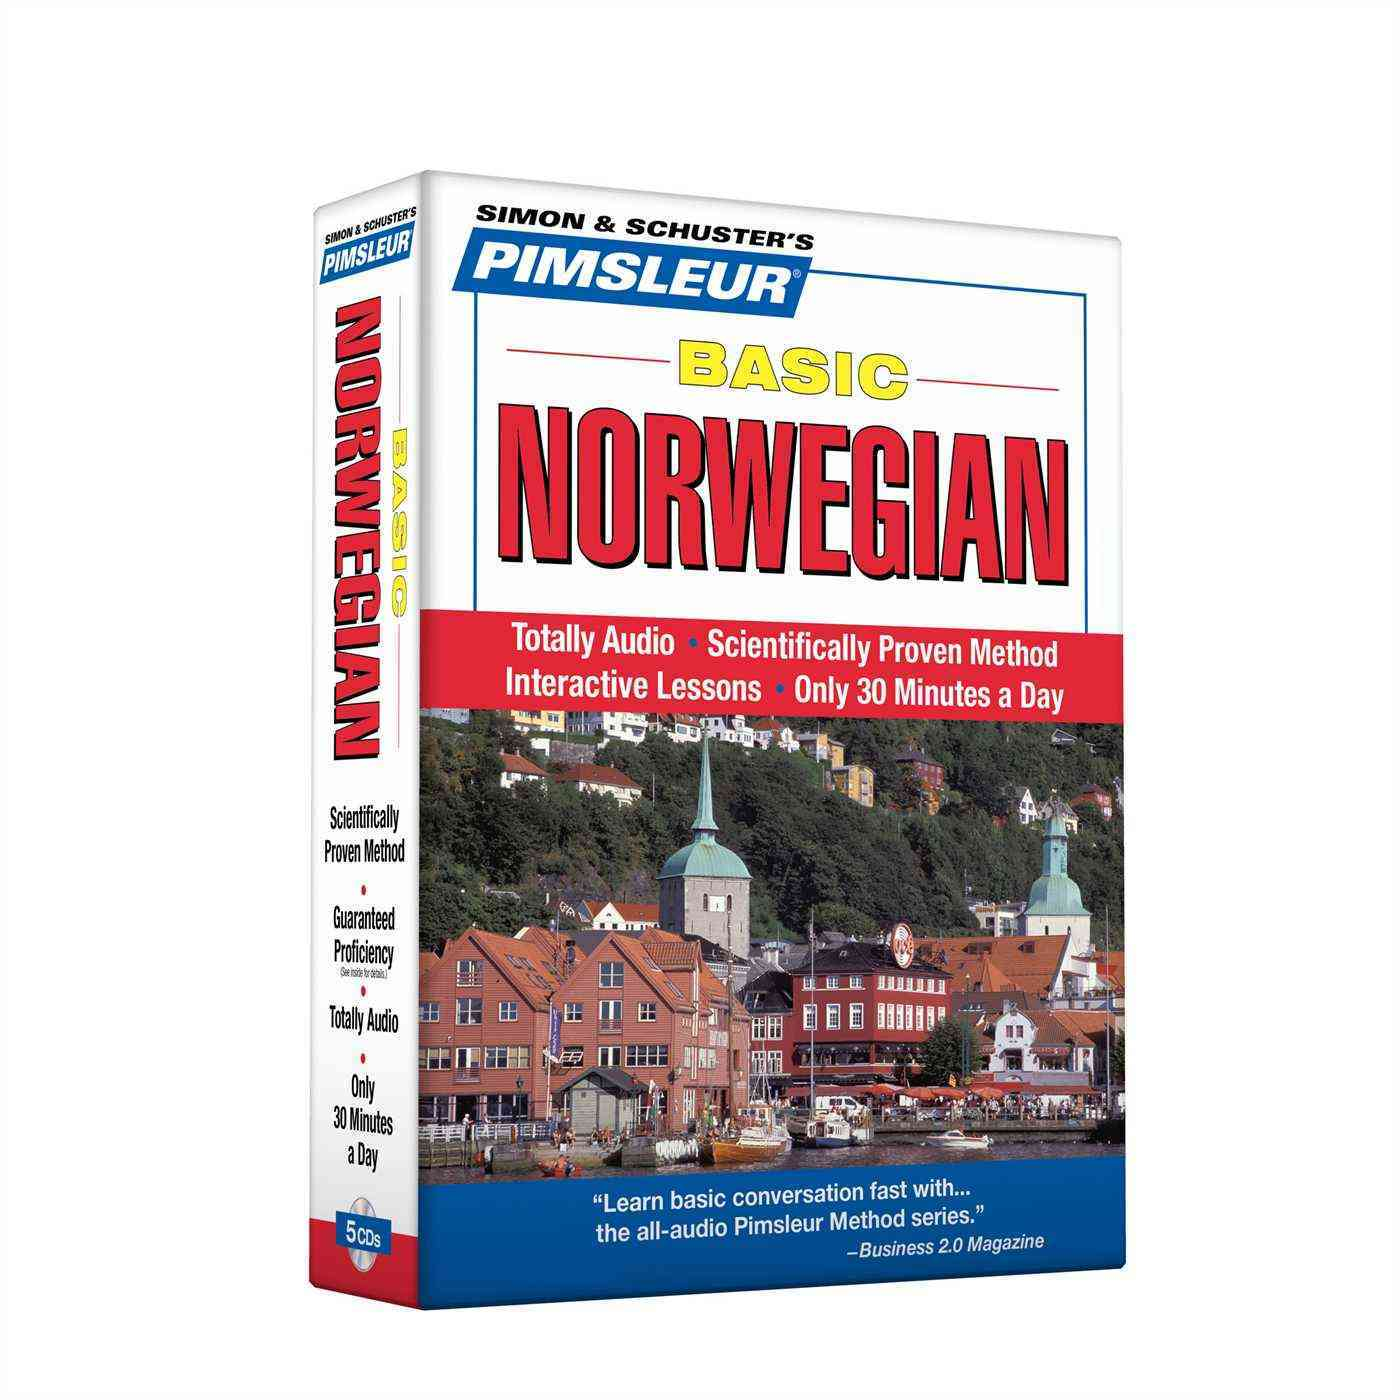 [CD] Pimsleur Basic Norwegian By Pimsleur (COR)